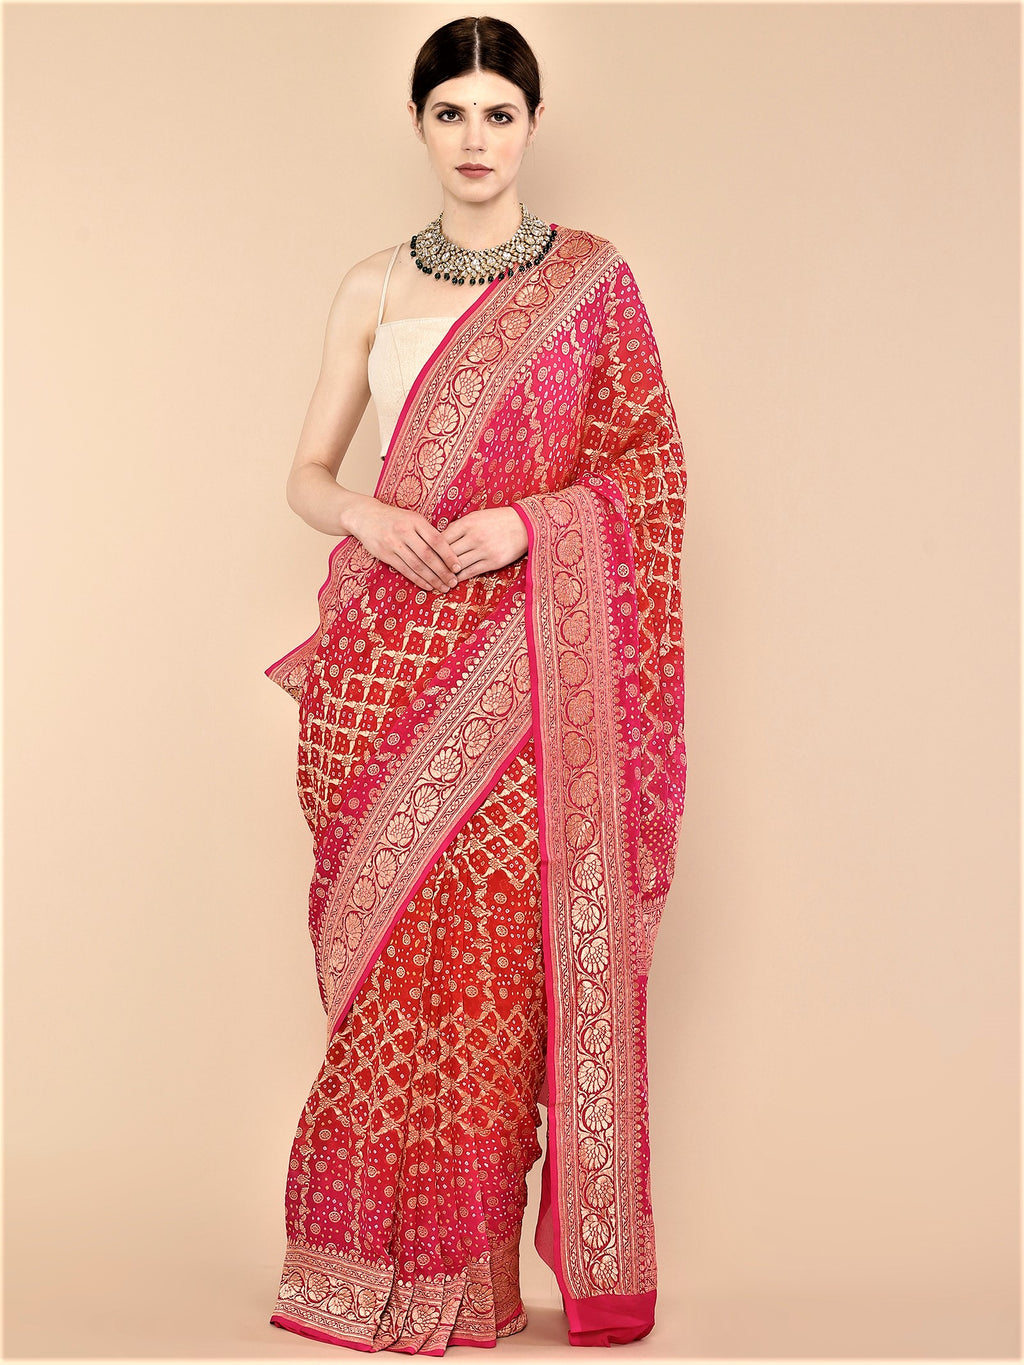 Handwoven Pure Georgette Khaddi Banarasi Bandhej Saree in Rani pink and Red ombre dye